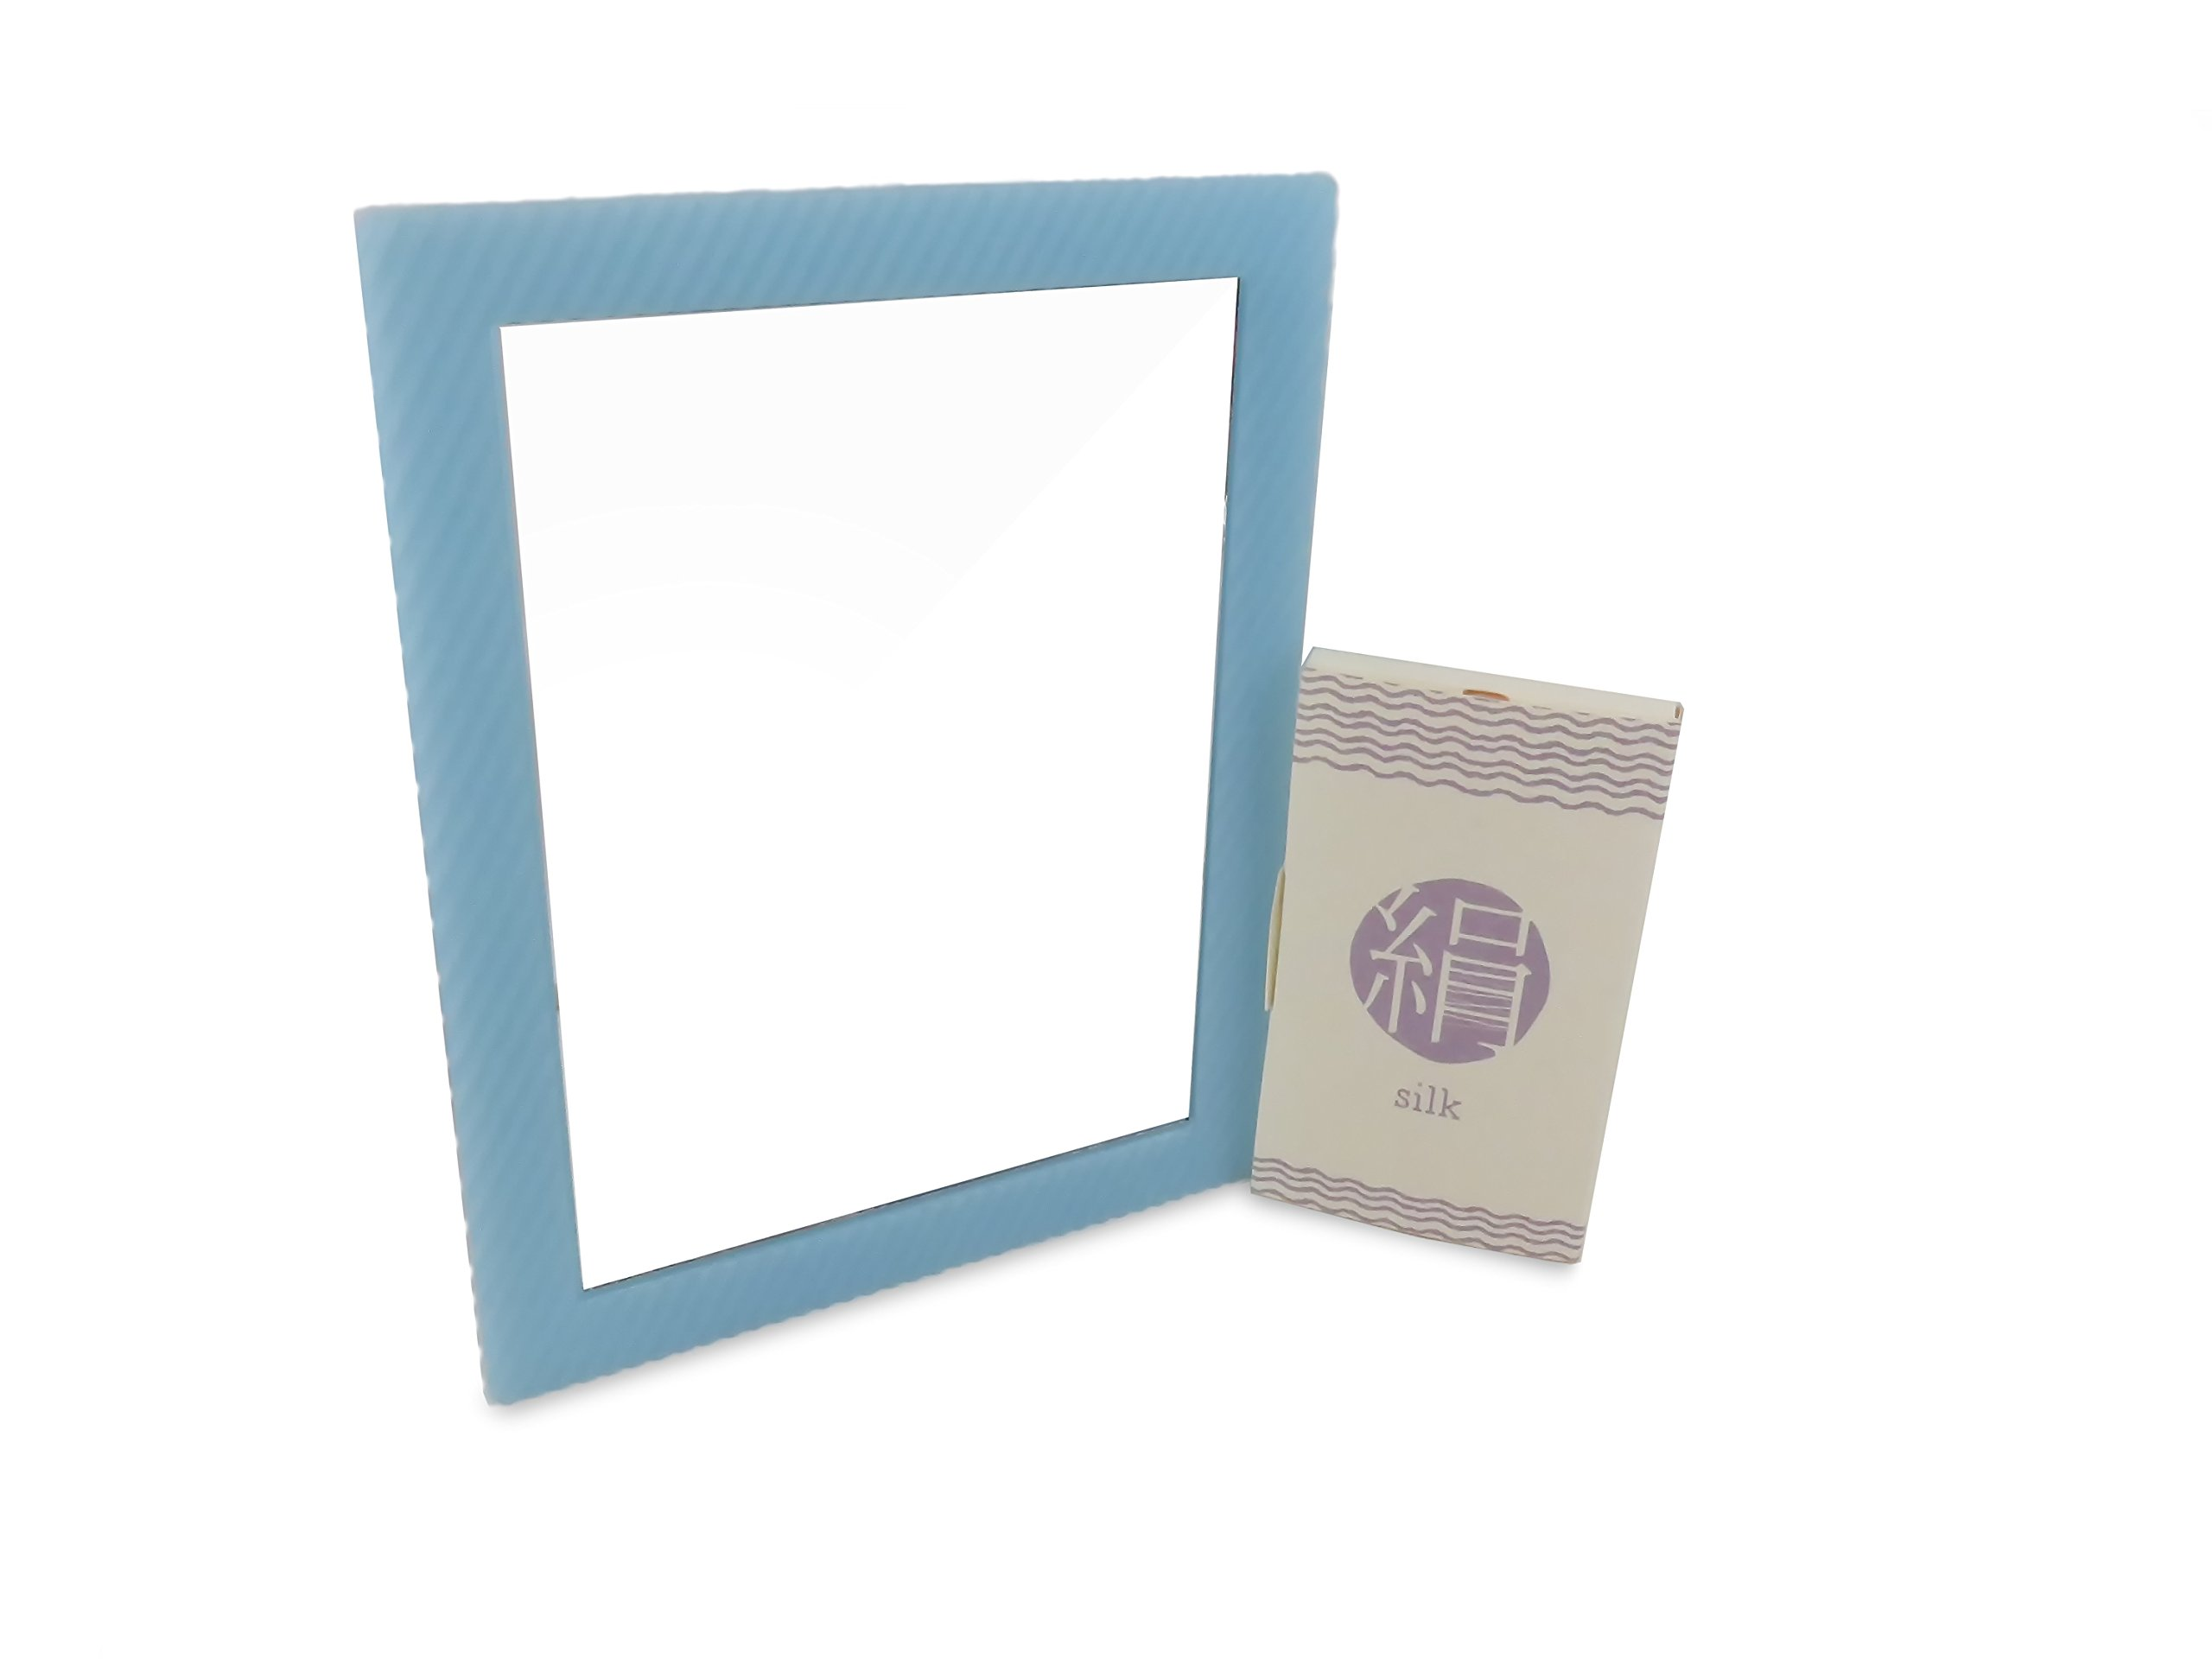 Locker Makeup Glass Mirror Rectangular Blue 6.25'' x 4.75'' Magnetic with Silk Blotting Absorbing Oil Paper 100 Sheets (2 Piece Set)